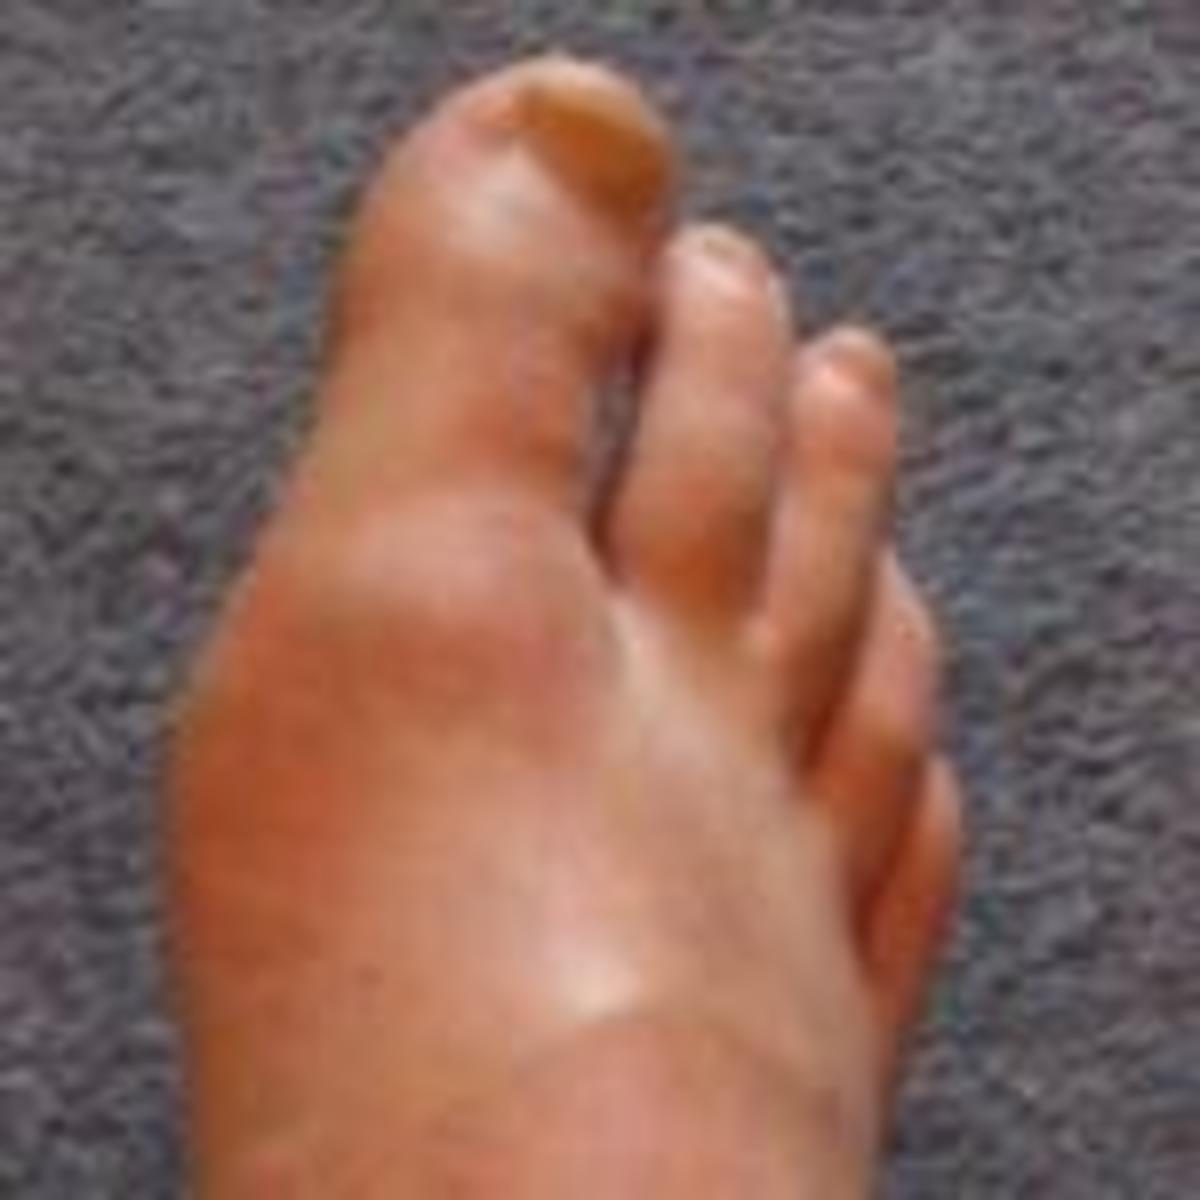 A typical gout attack